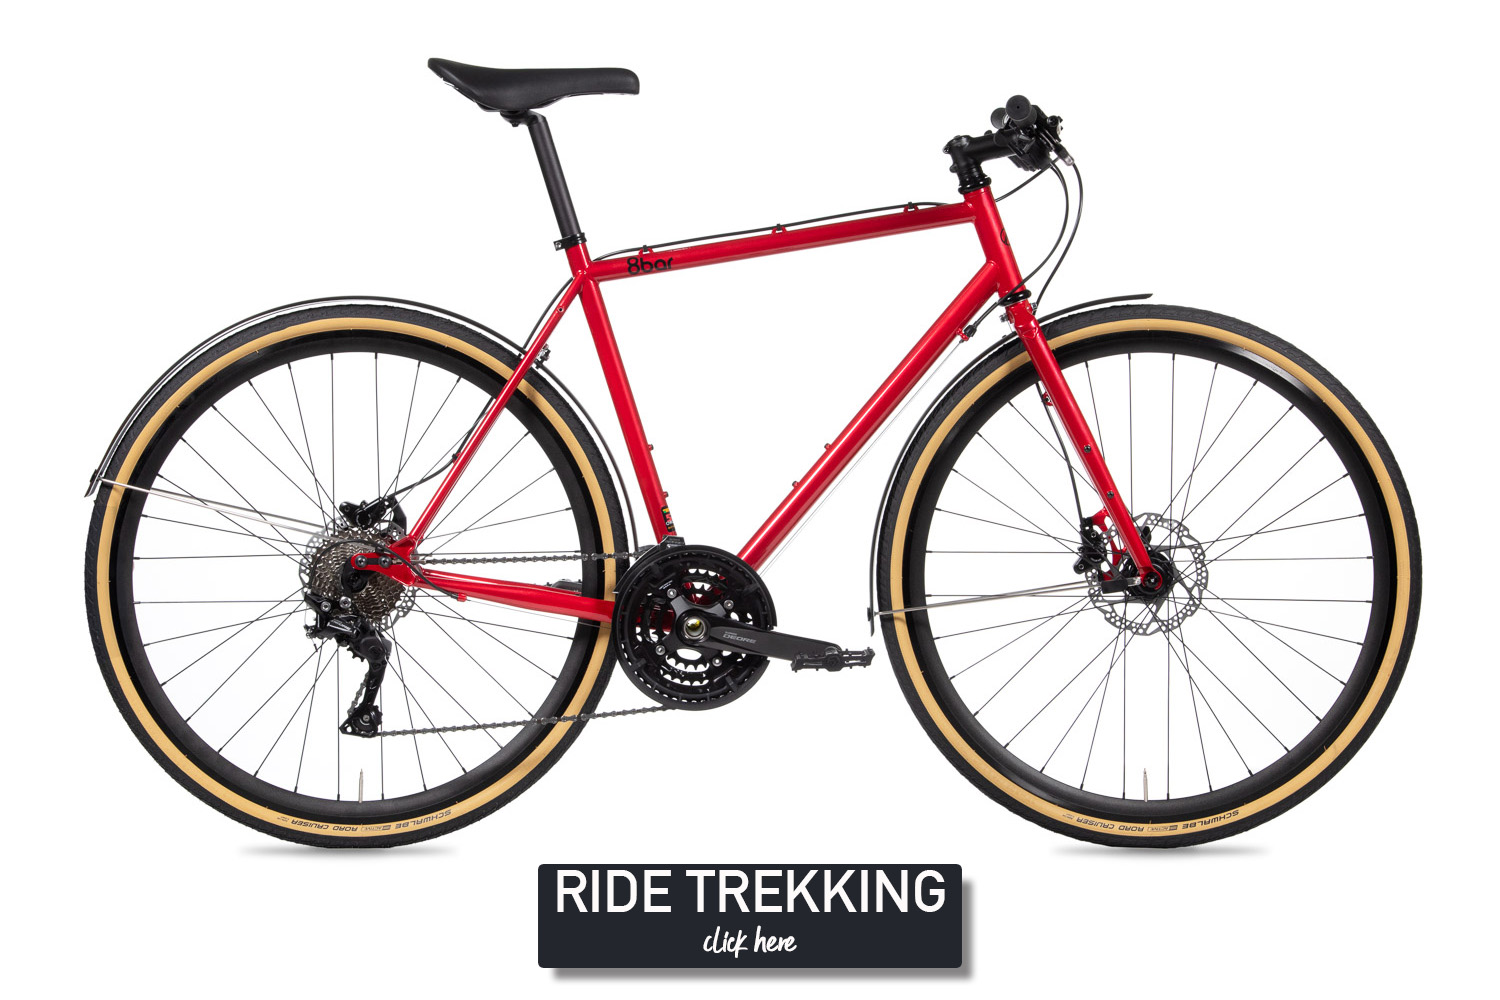 Red bicycle on a white background. It is an 8bar Mitte Steel trekking with fenders, skinwall tires and disc brakes.